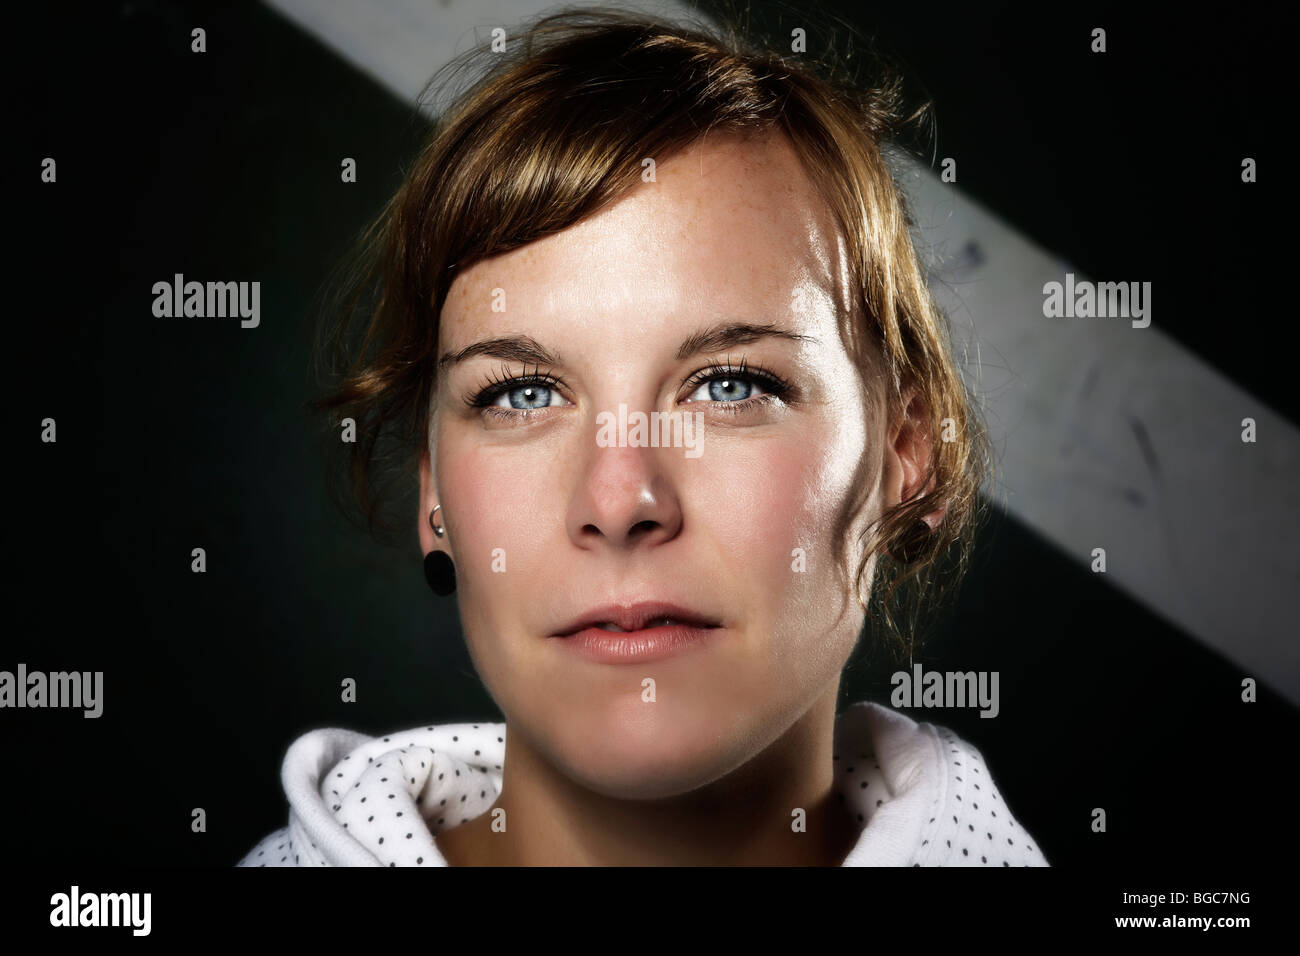 Portrait Of A Young Woman Direct Look Cool Young People Stock Photo Alamy